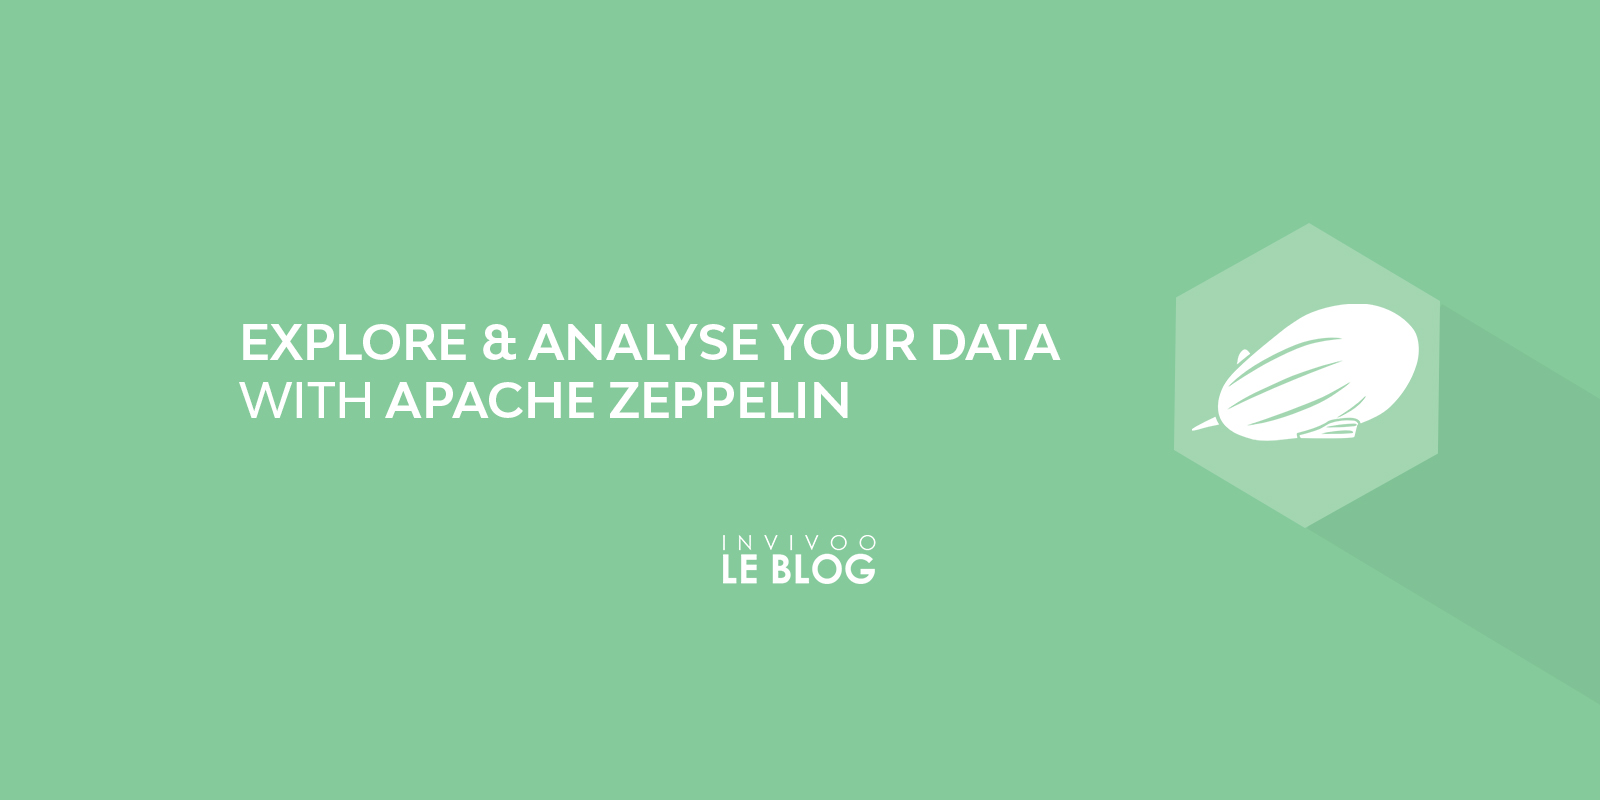 Explore & Analyse your data with Apache Zeppelin